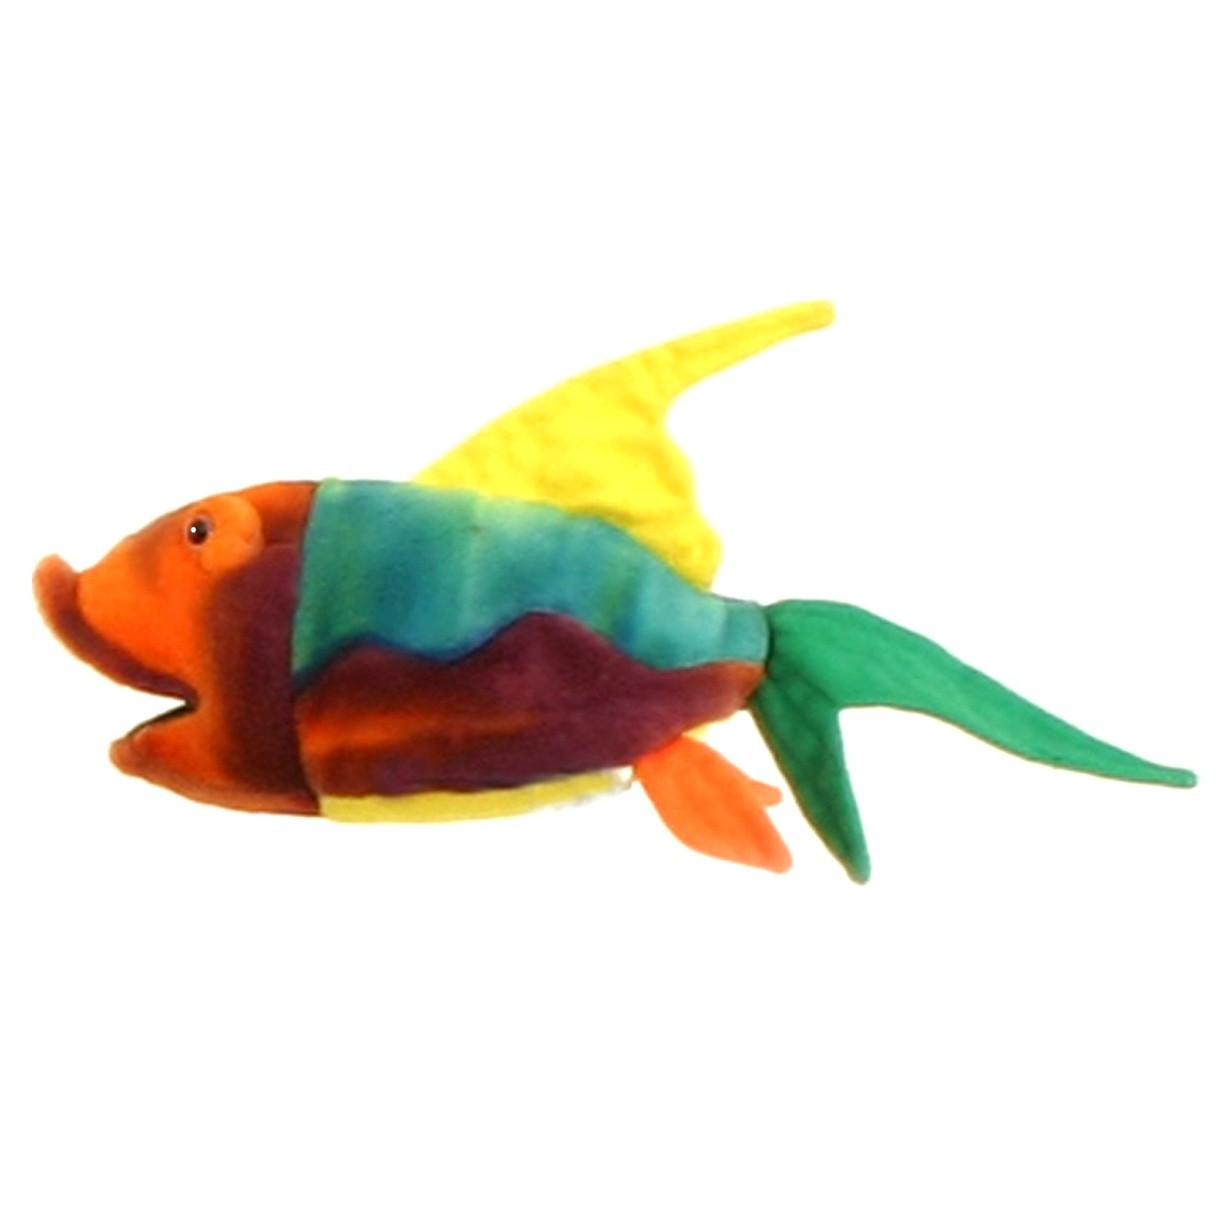 Theanimalplace fish 3 9 inches 2972 hansa realistic for Fish stuffed animal